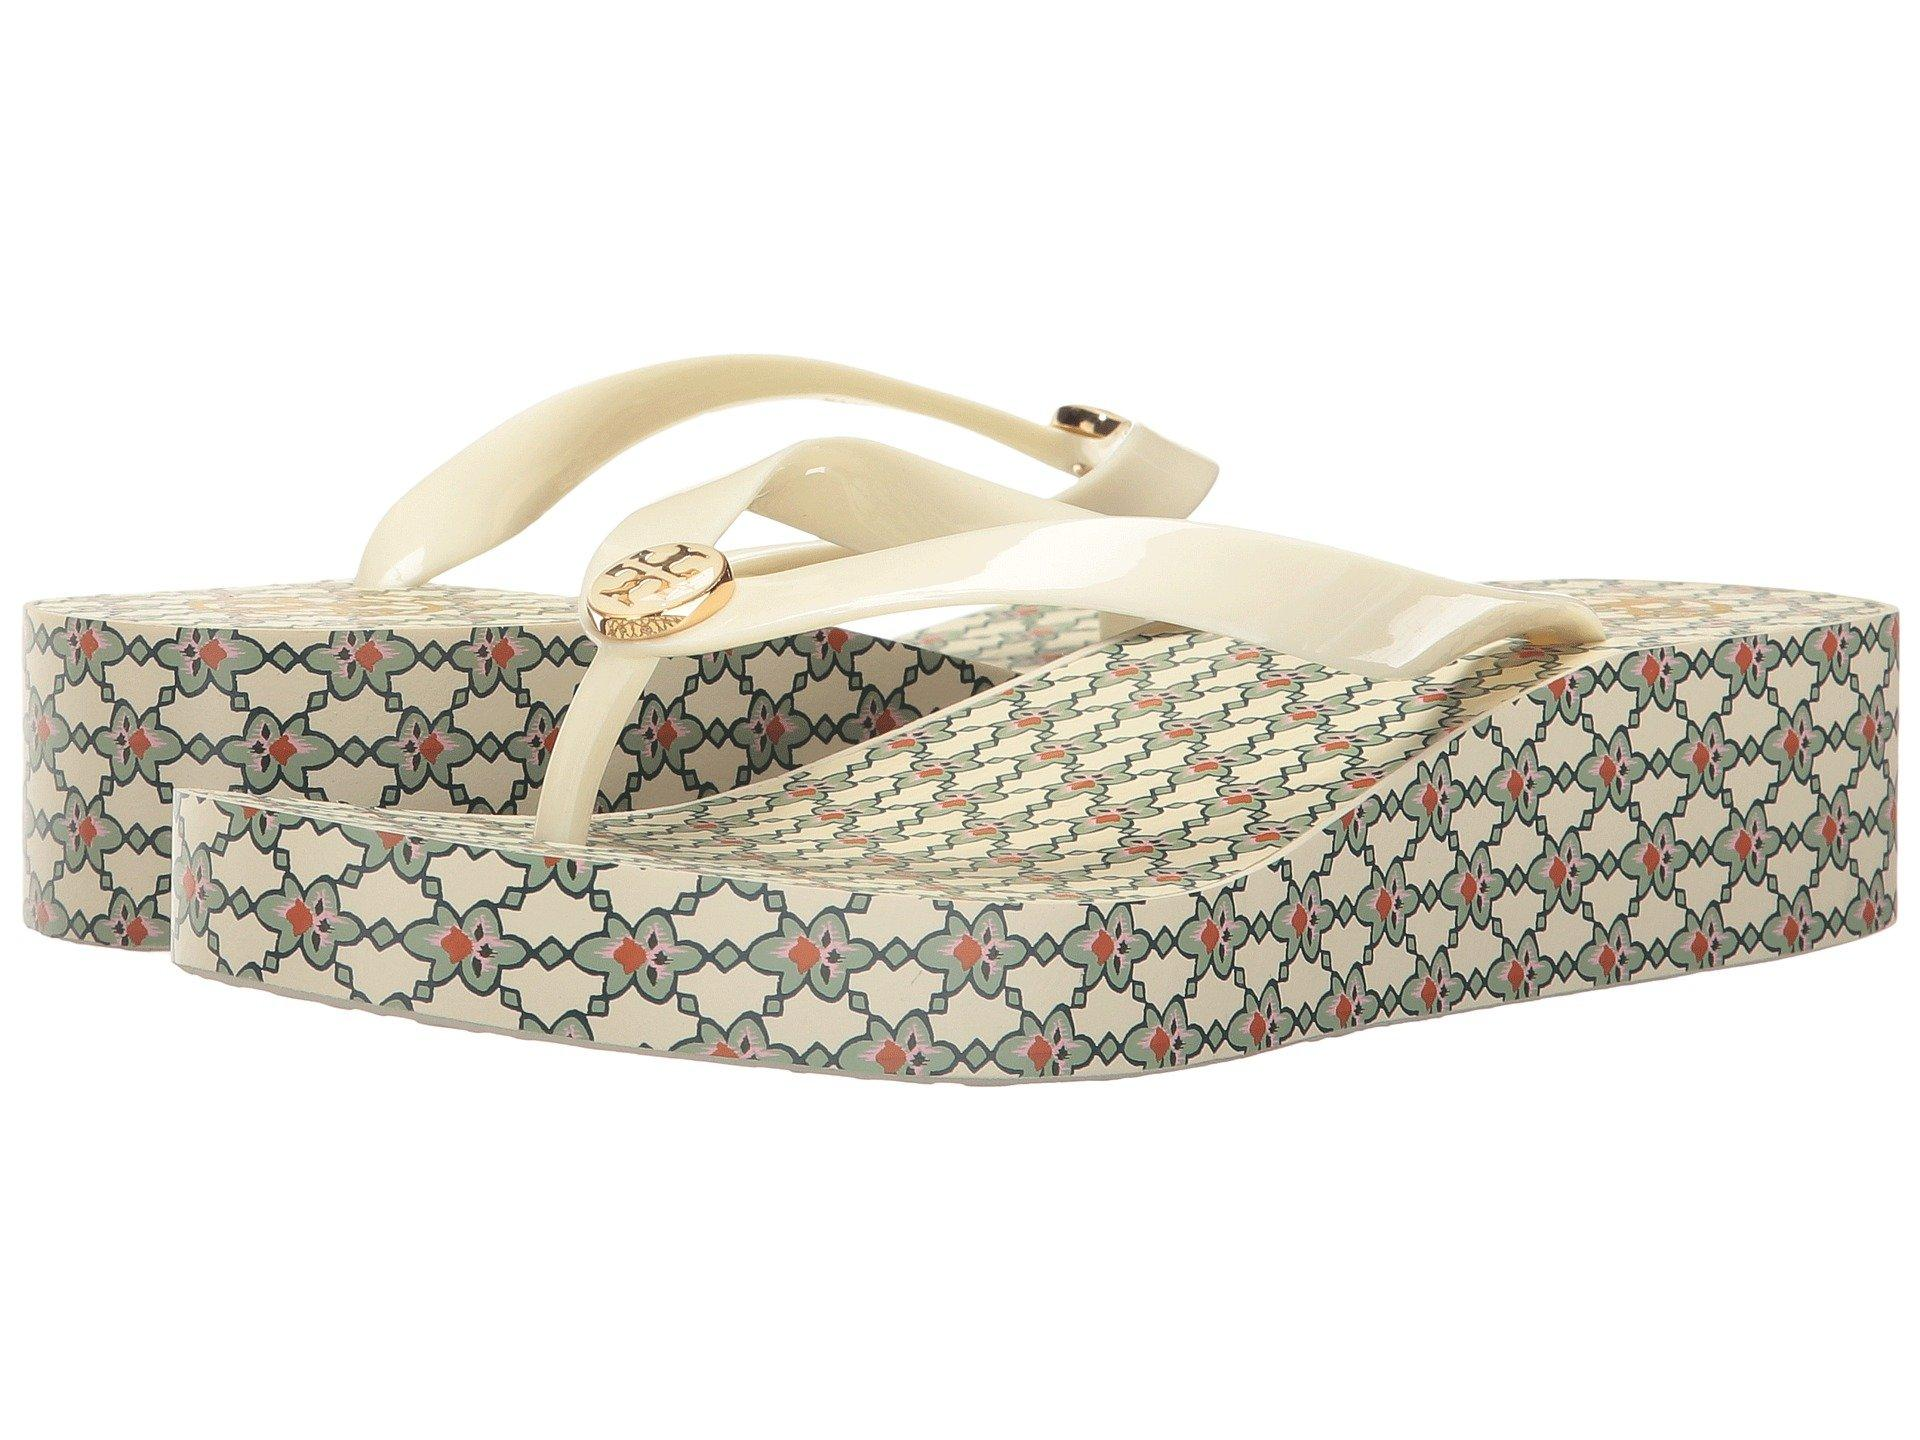 ba029cb43662a2 Tory Burch Wedge Flip Flop In Piazza New Ivory